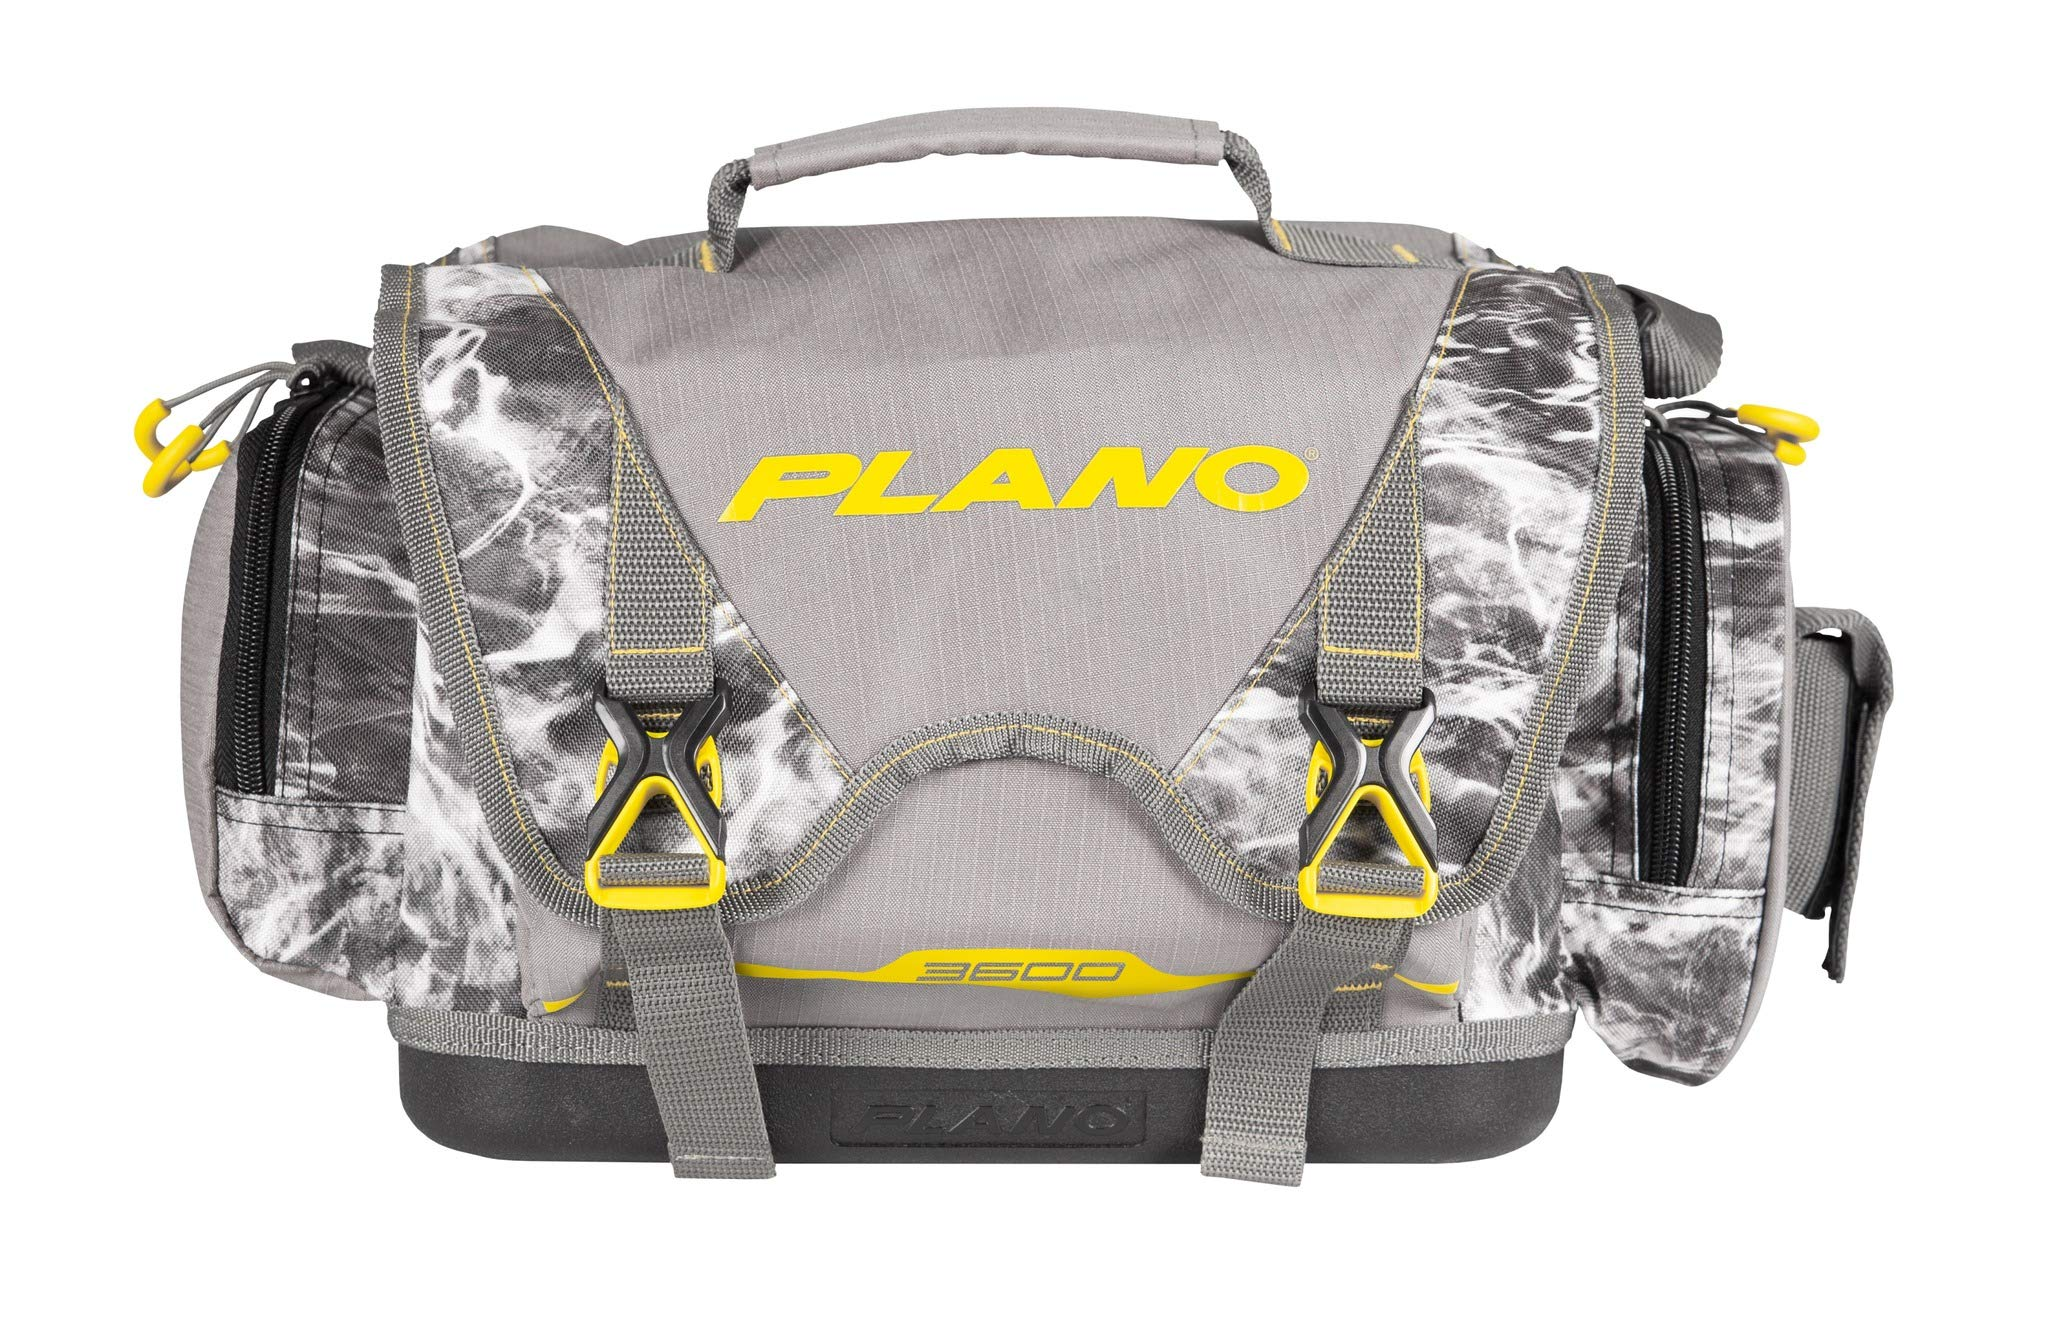 Plano B-Series 3600 Mossy Oak Manta Tackle Bag, Includes 4 Tackle Storage Stows